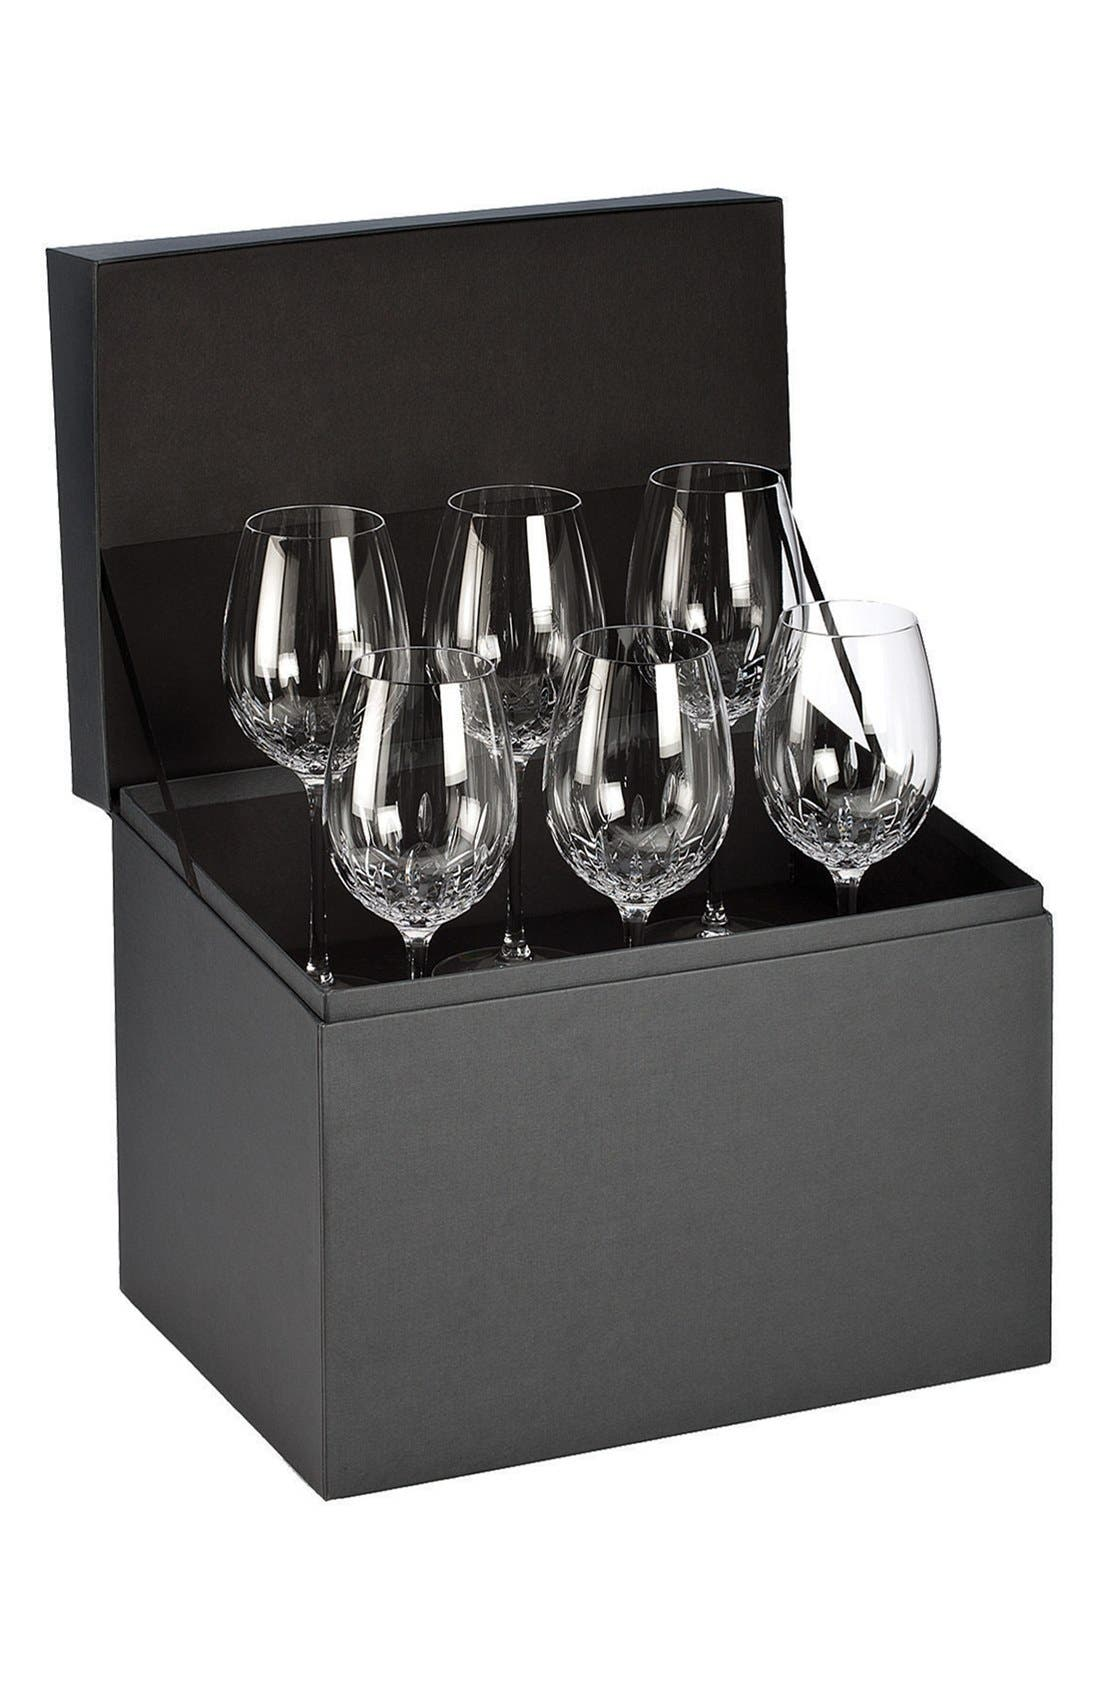 Main Image - Waterford 'Lismore Essence' Lead Crystal Goblets (Set of 6)